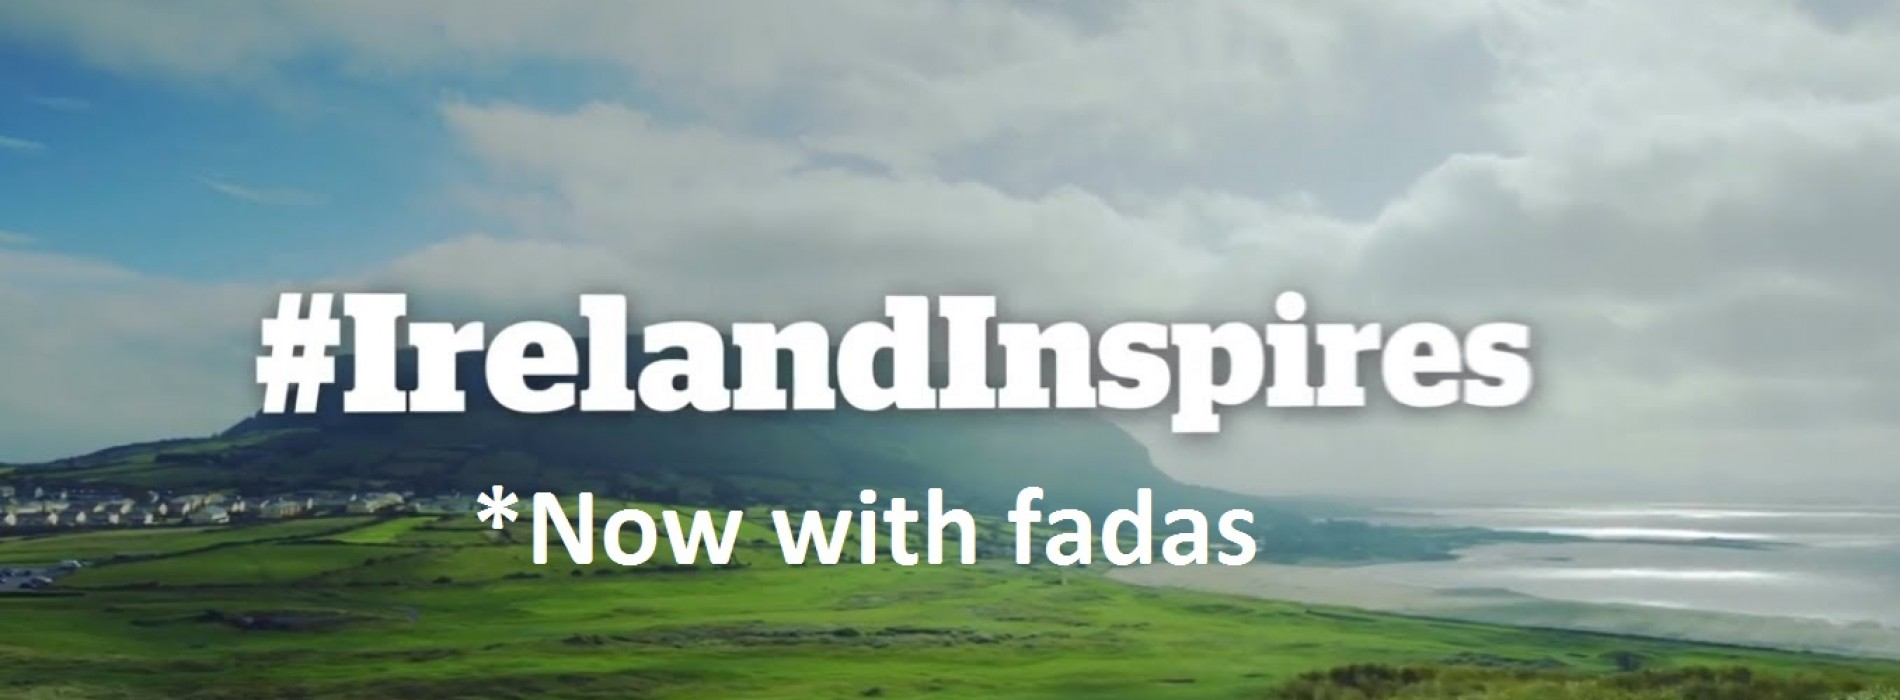 You Can Now Use Fadas In Web Addresses!